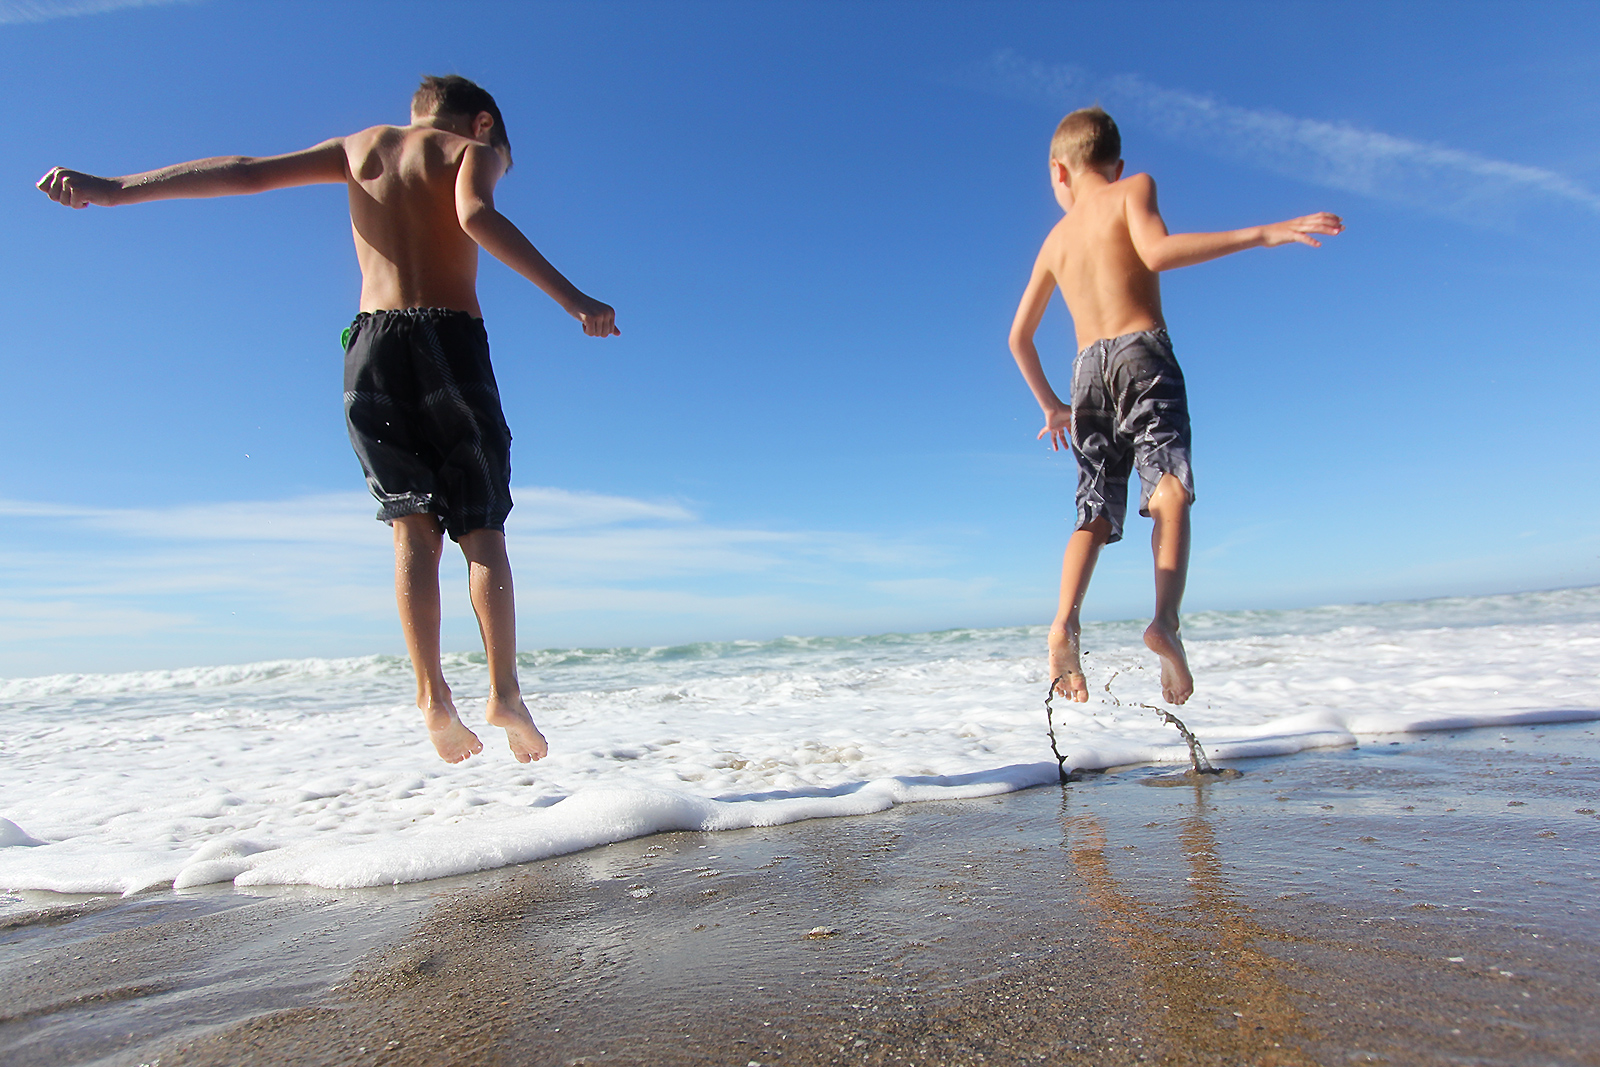 Jumping in the waves in Califoria after my sister's wedding. I had a few close calls with keeping the camera dry...